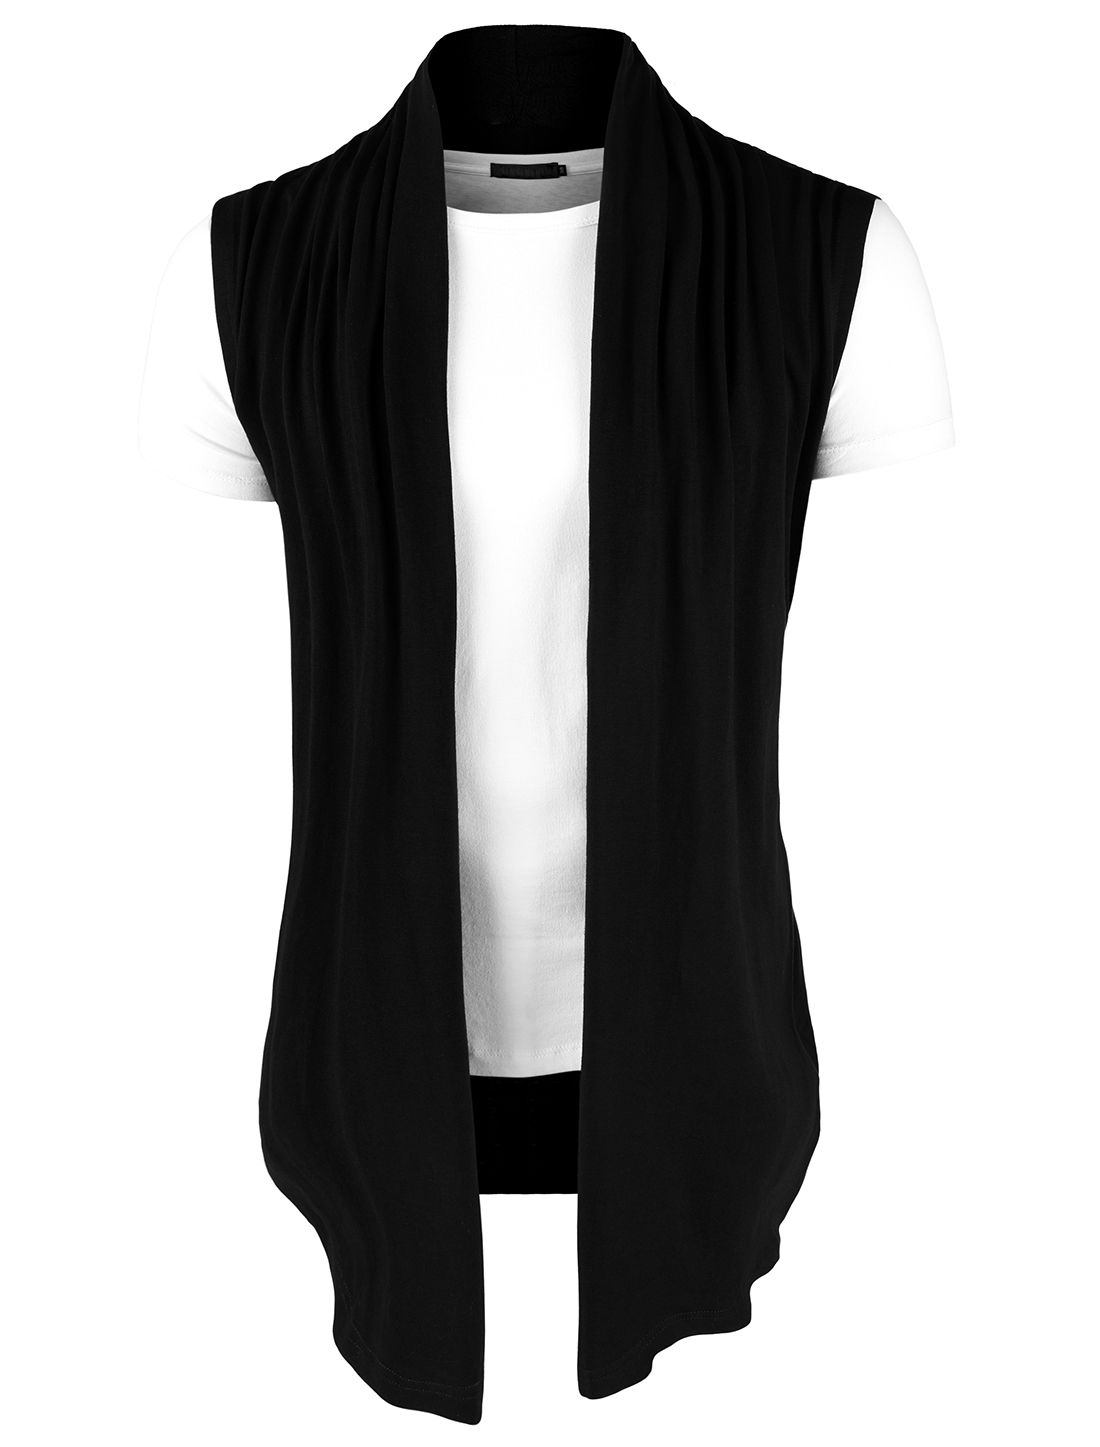 Men Shawl Collar Lightweight Open Front Sleeveless Long Cardigan Vest Black S